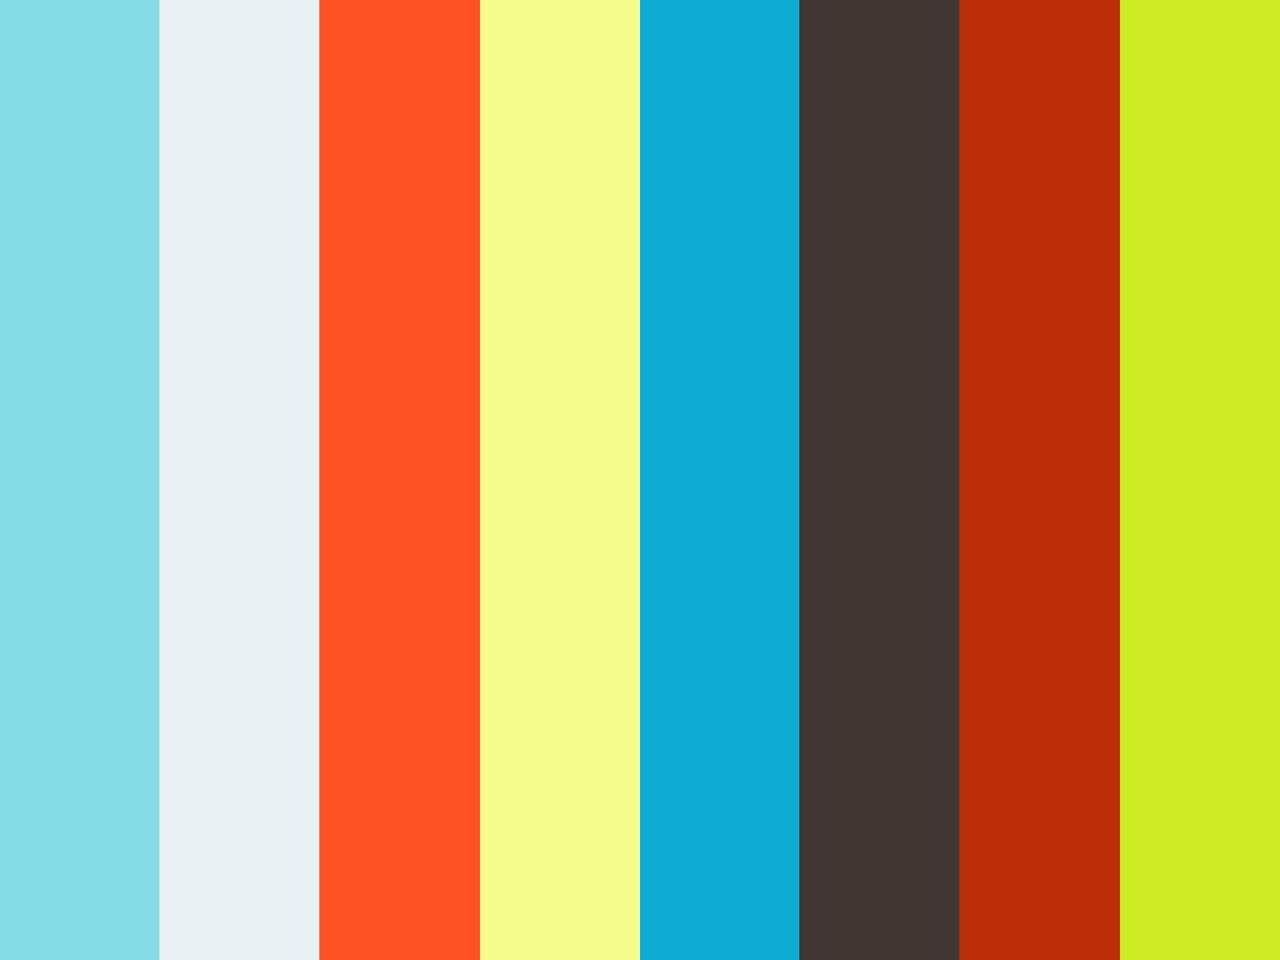 June 10, 2018 | Matthew 28:16-20 | Paster Scott Wade